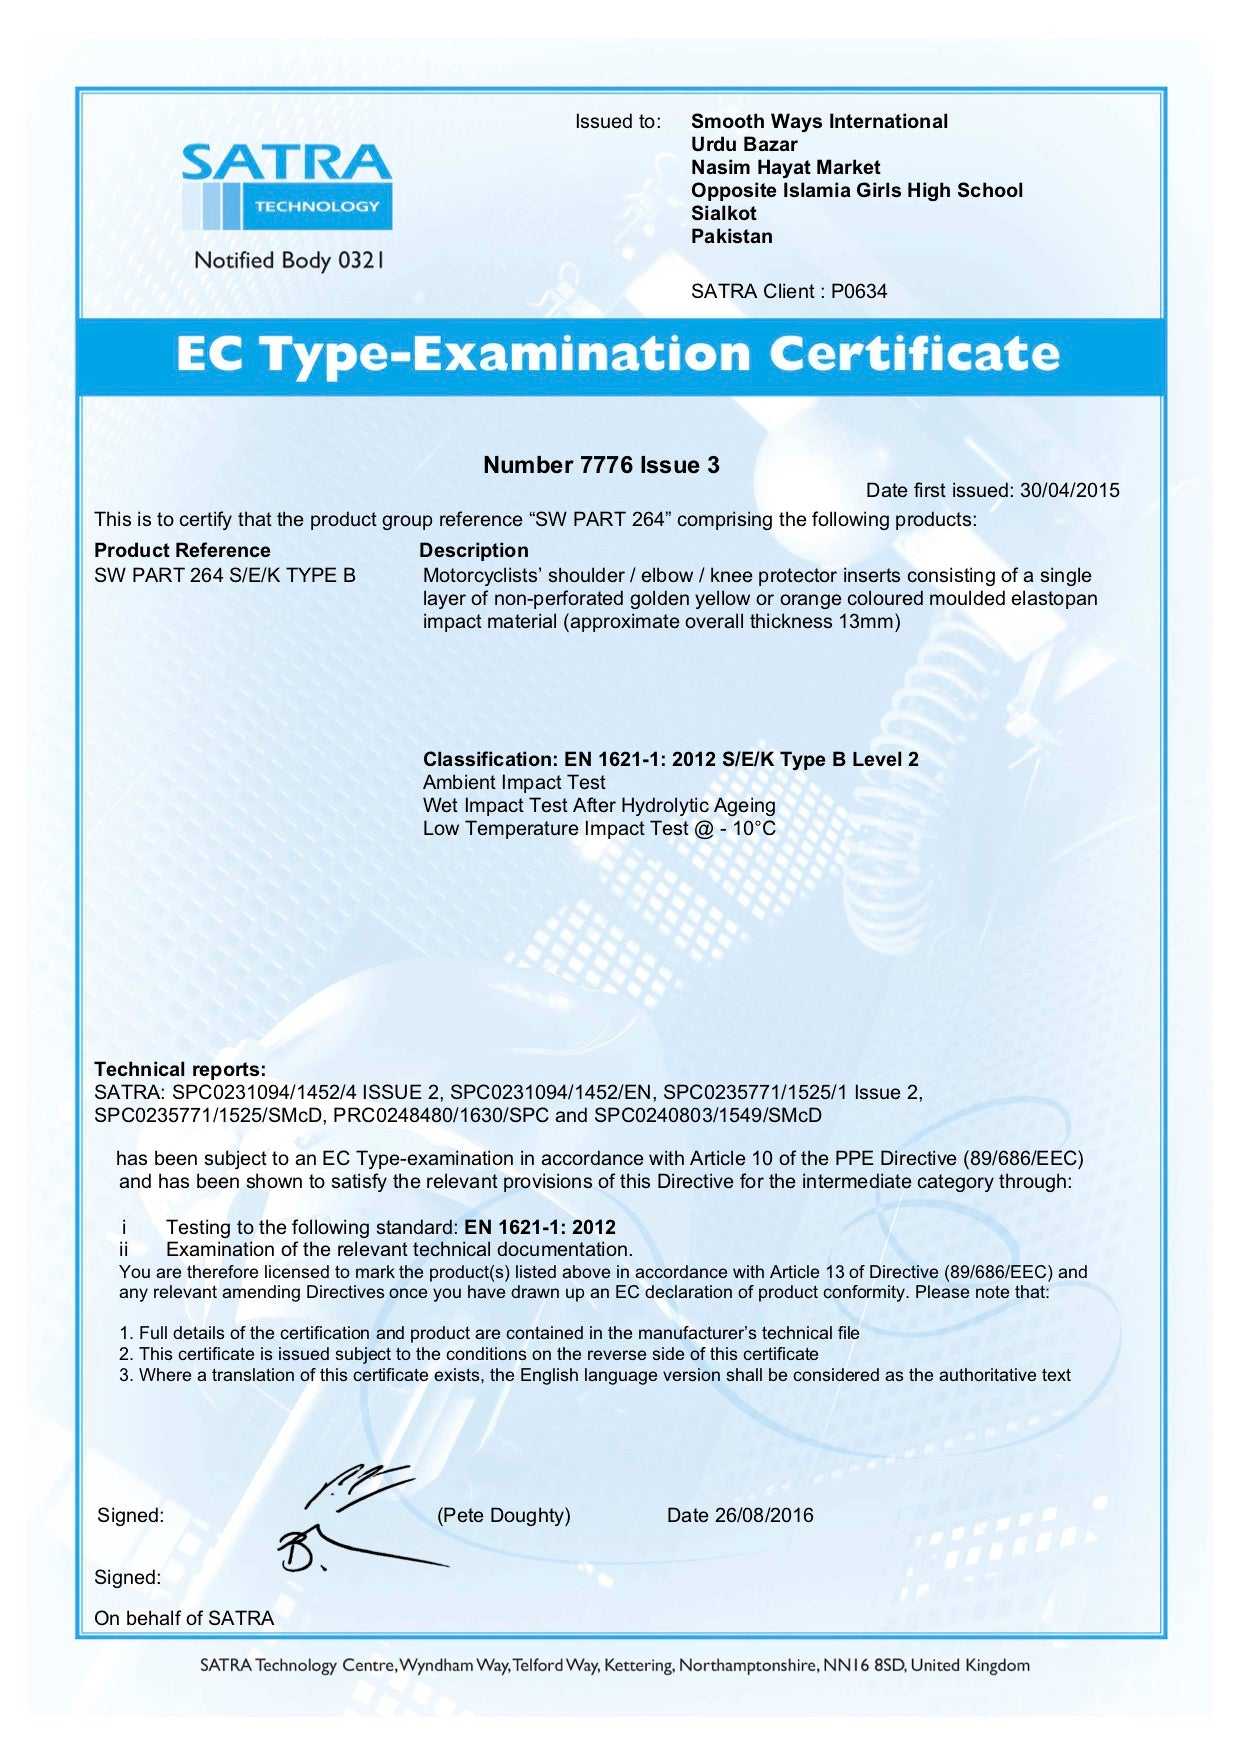 An examination certificate from a leading motorcycle safety body which confirms approval of the safety standards of the motorbike clothing when testing for shoulder, elbow and knee protection.